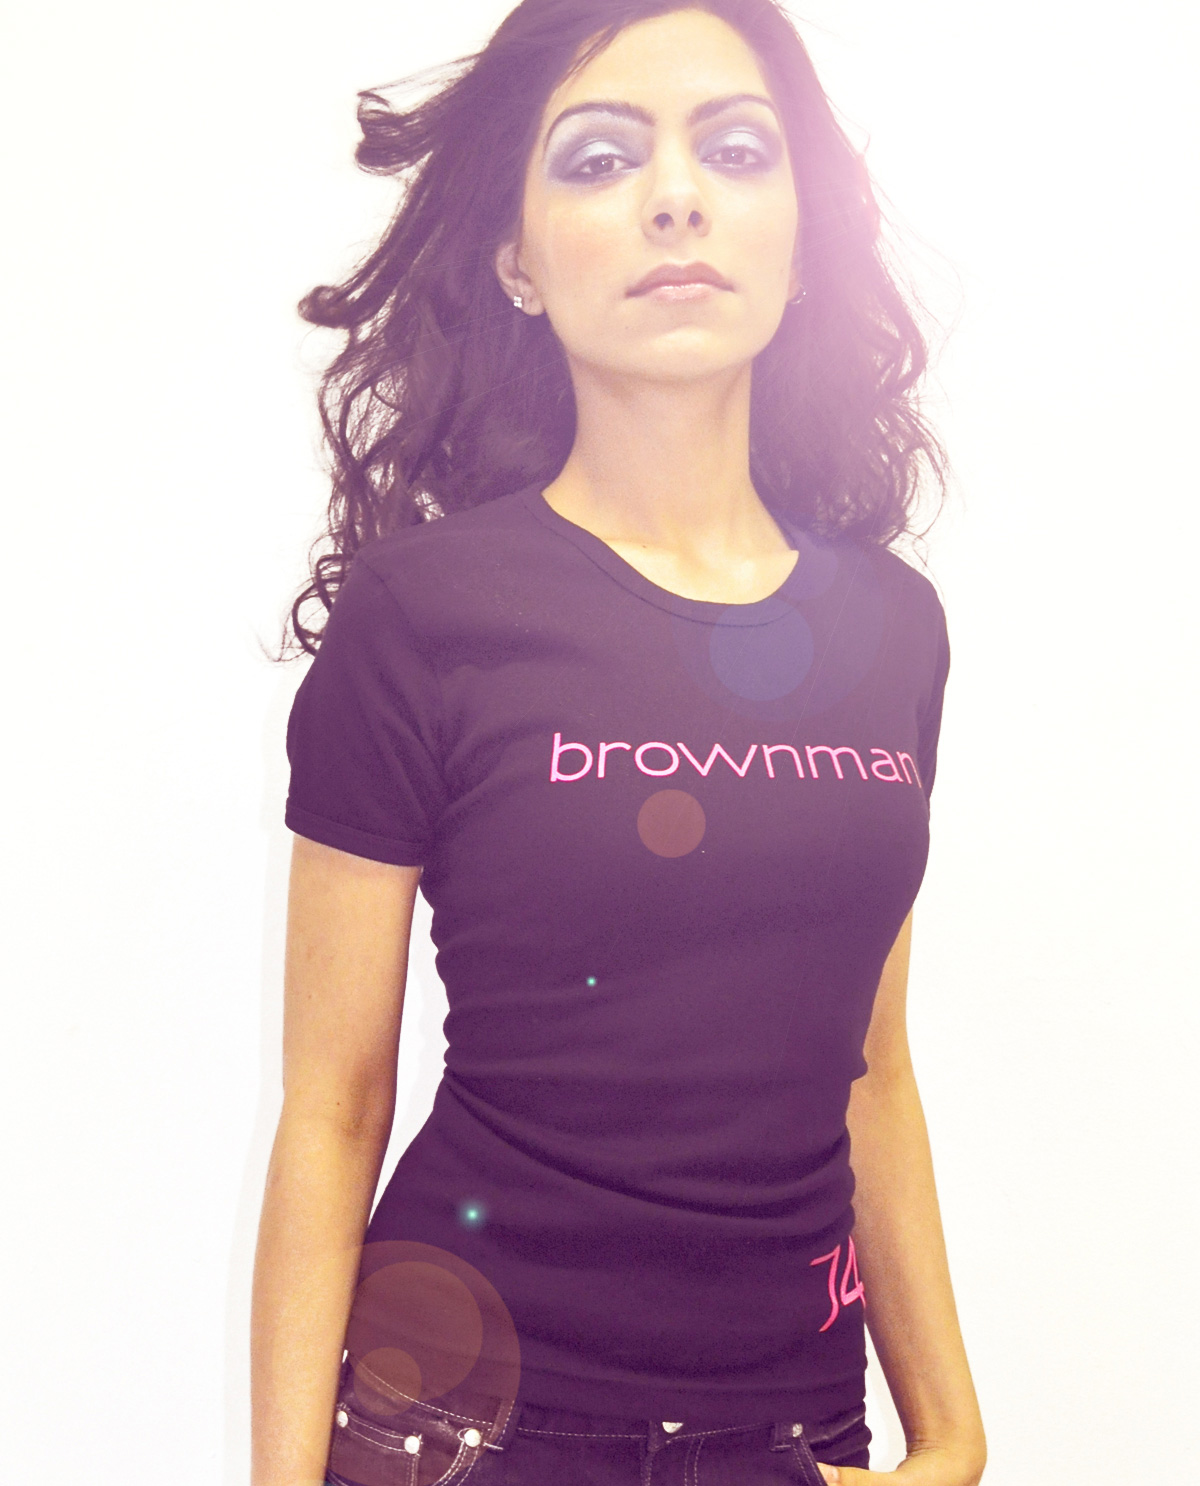 South Asian female model wearing black fitted American Apparel brownman74 tshirt by Brown Man Clothing Co.